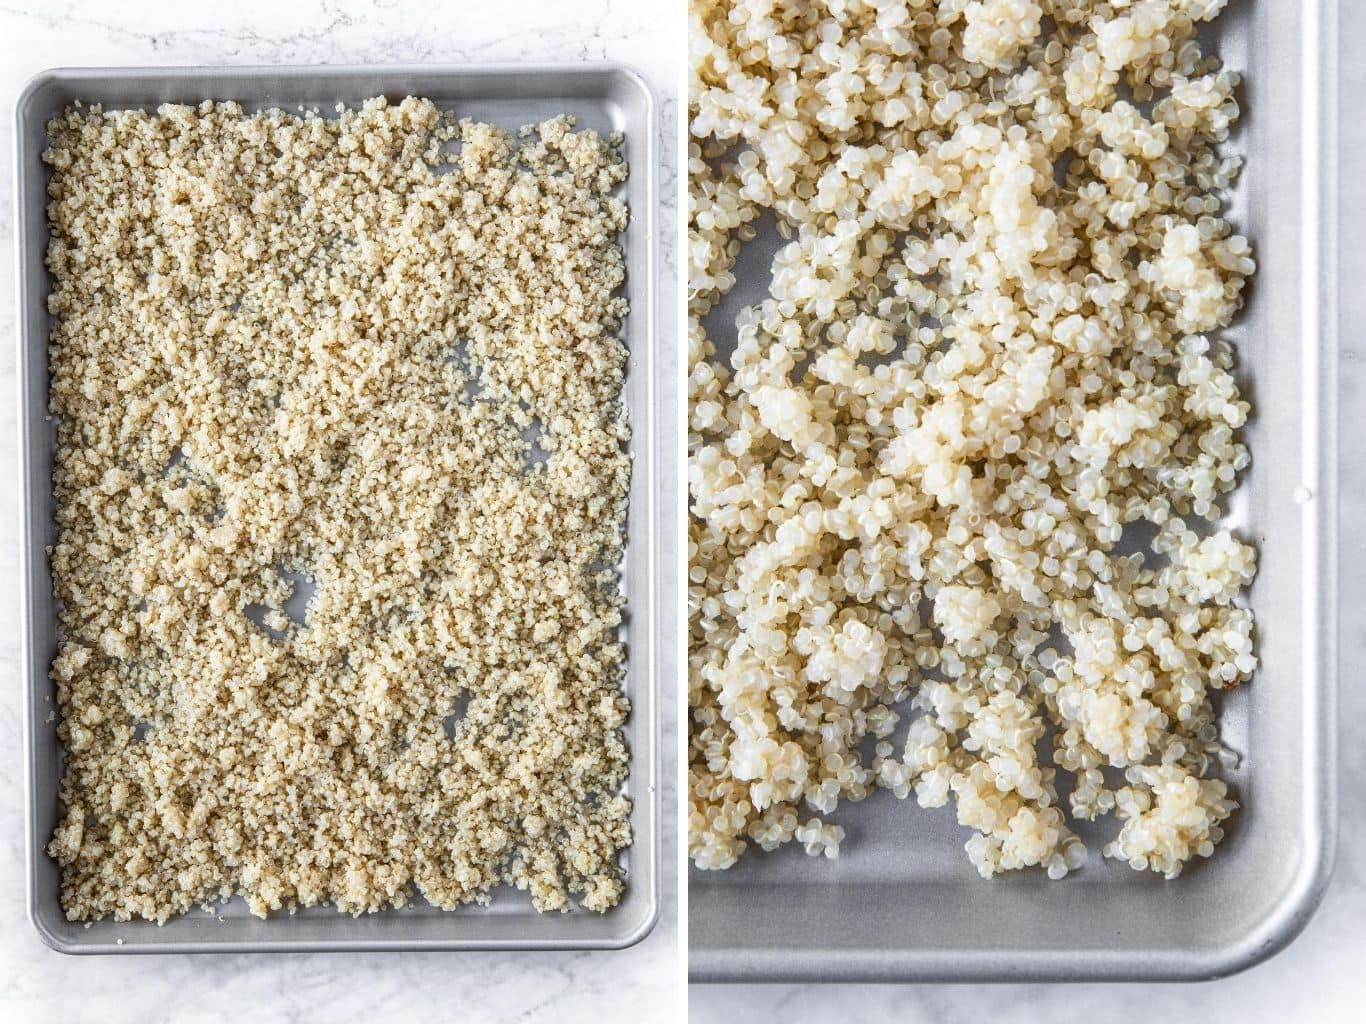 Cooked and prepped quinoa on a metal rimmed baking sheet, ready to be used in a Quinoa Salad With Cherry Tomatoes, Radicchio, and Pistachios from verygoodcook.com